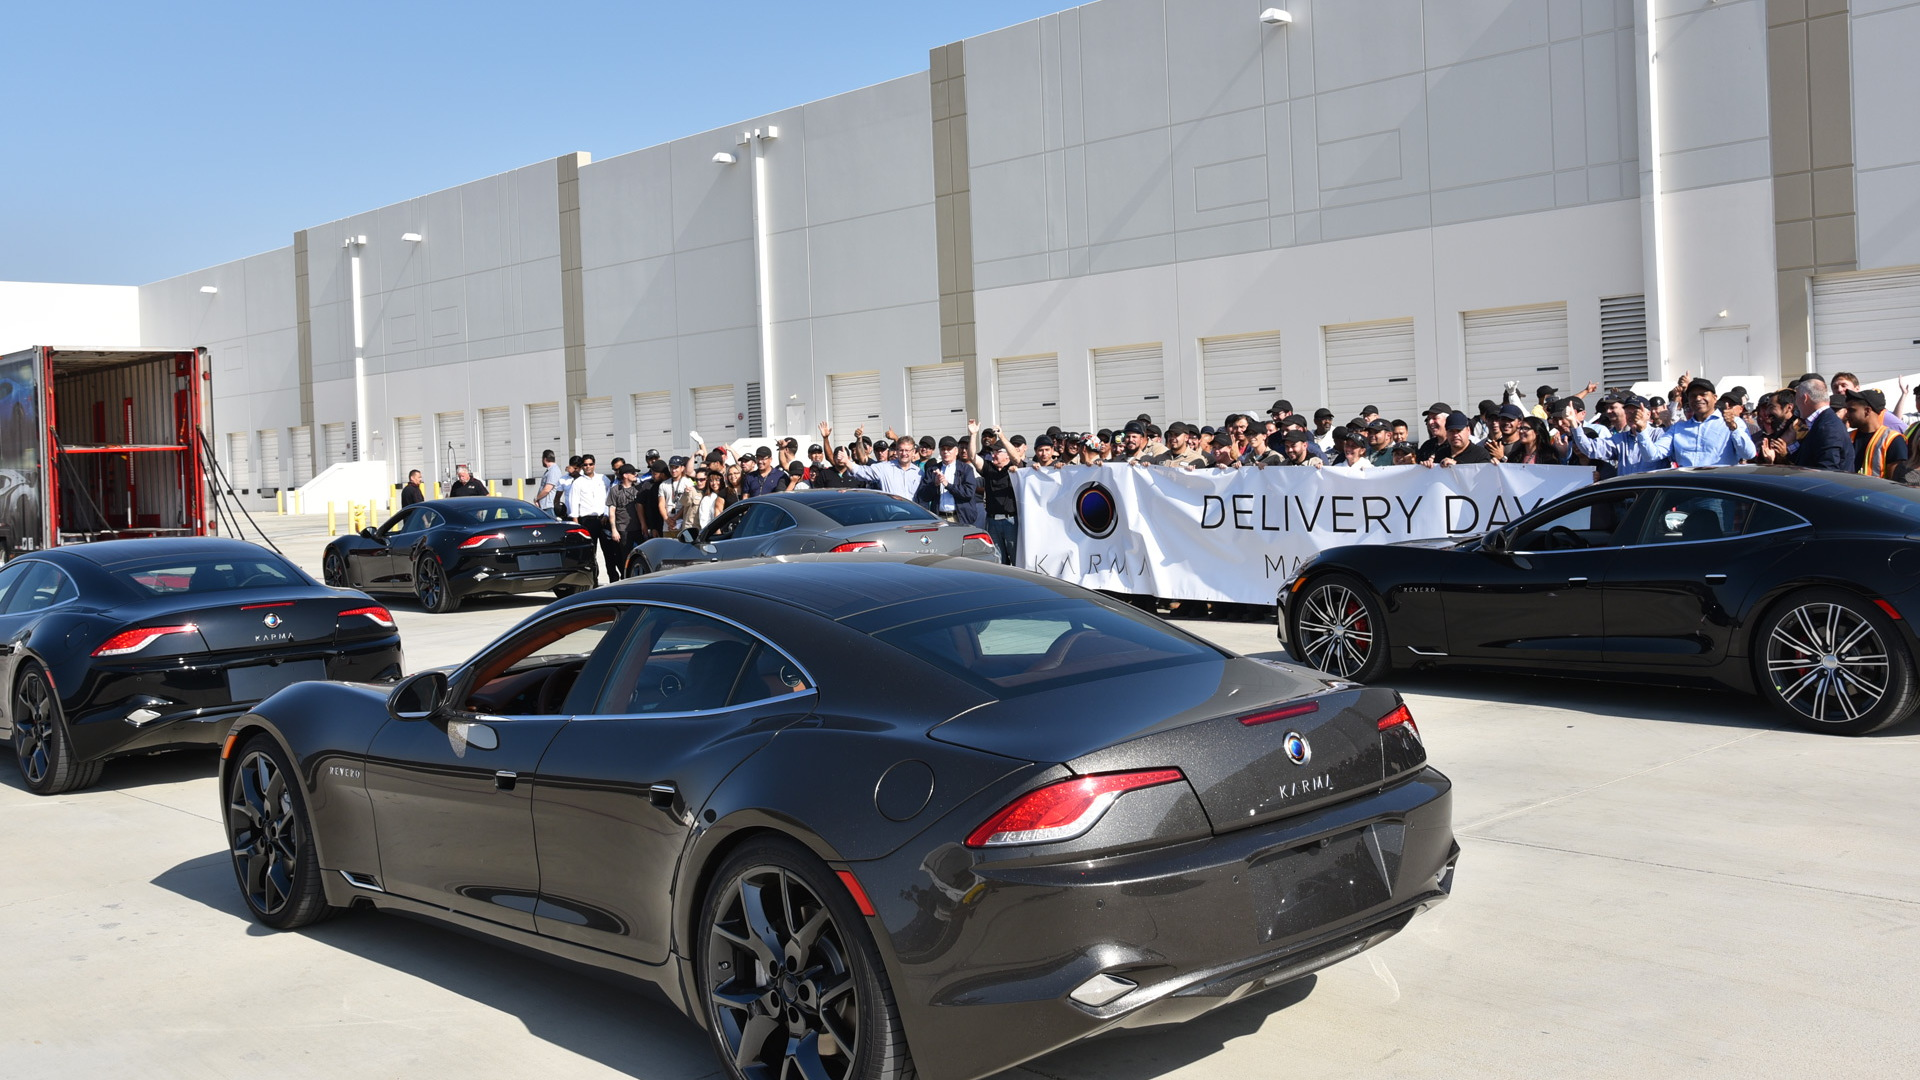 2017 Karma Revero deliveries start on May 12, 2017